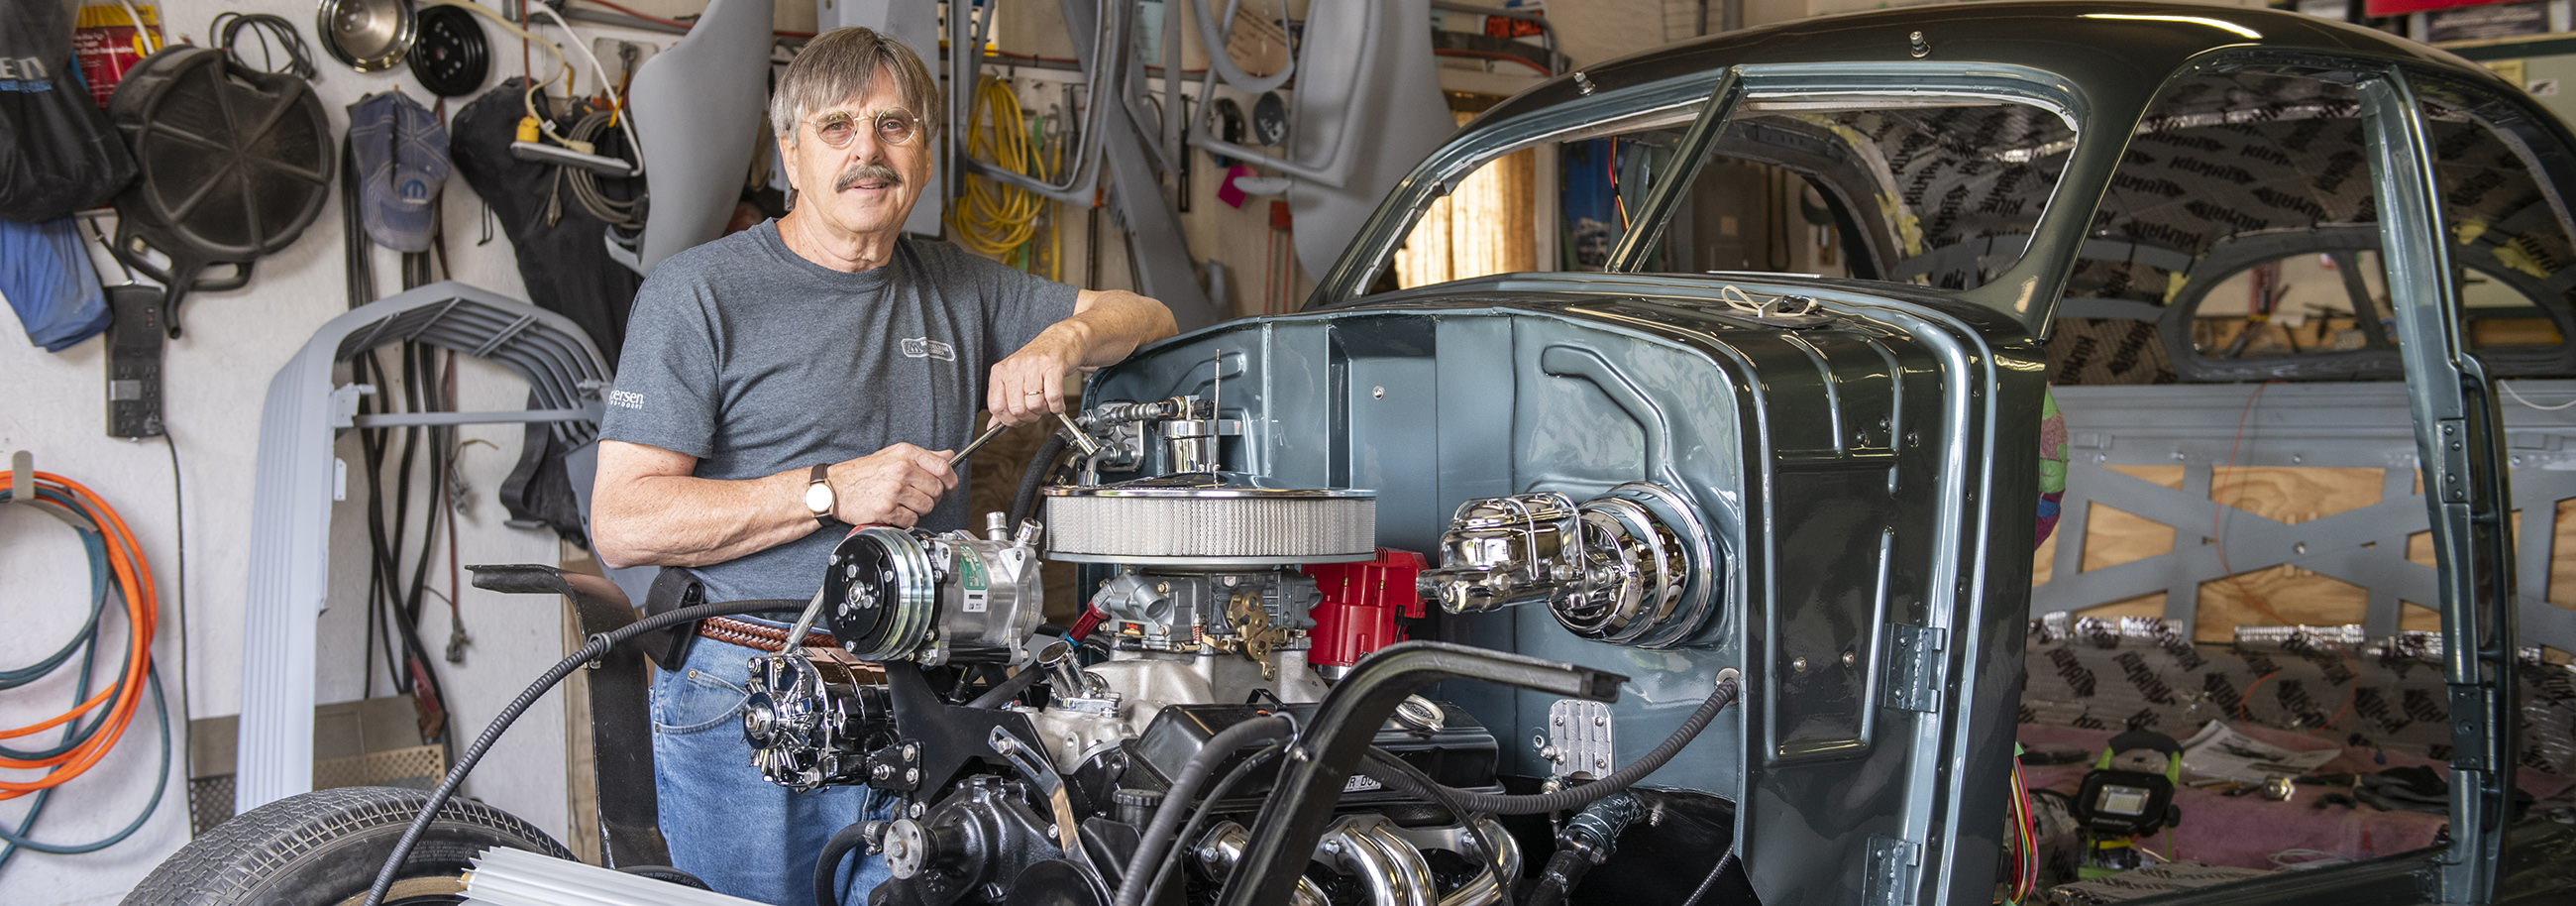 Larry Welsch restores old cars, including the 1937 Cord pictured here.